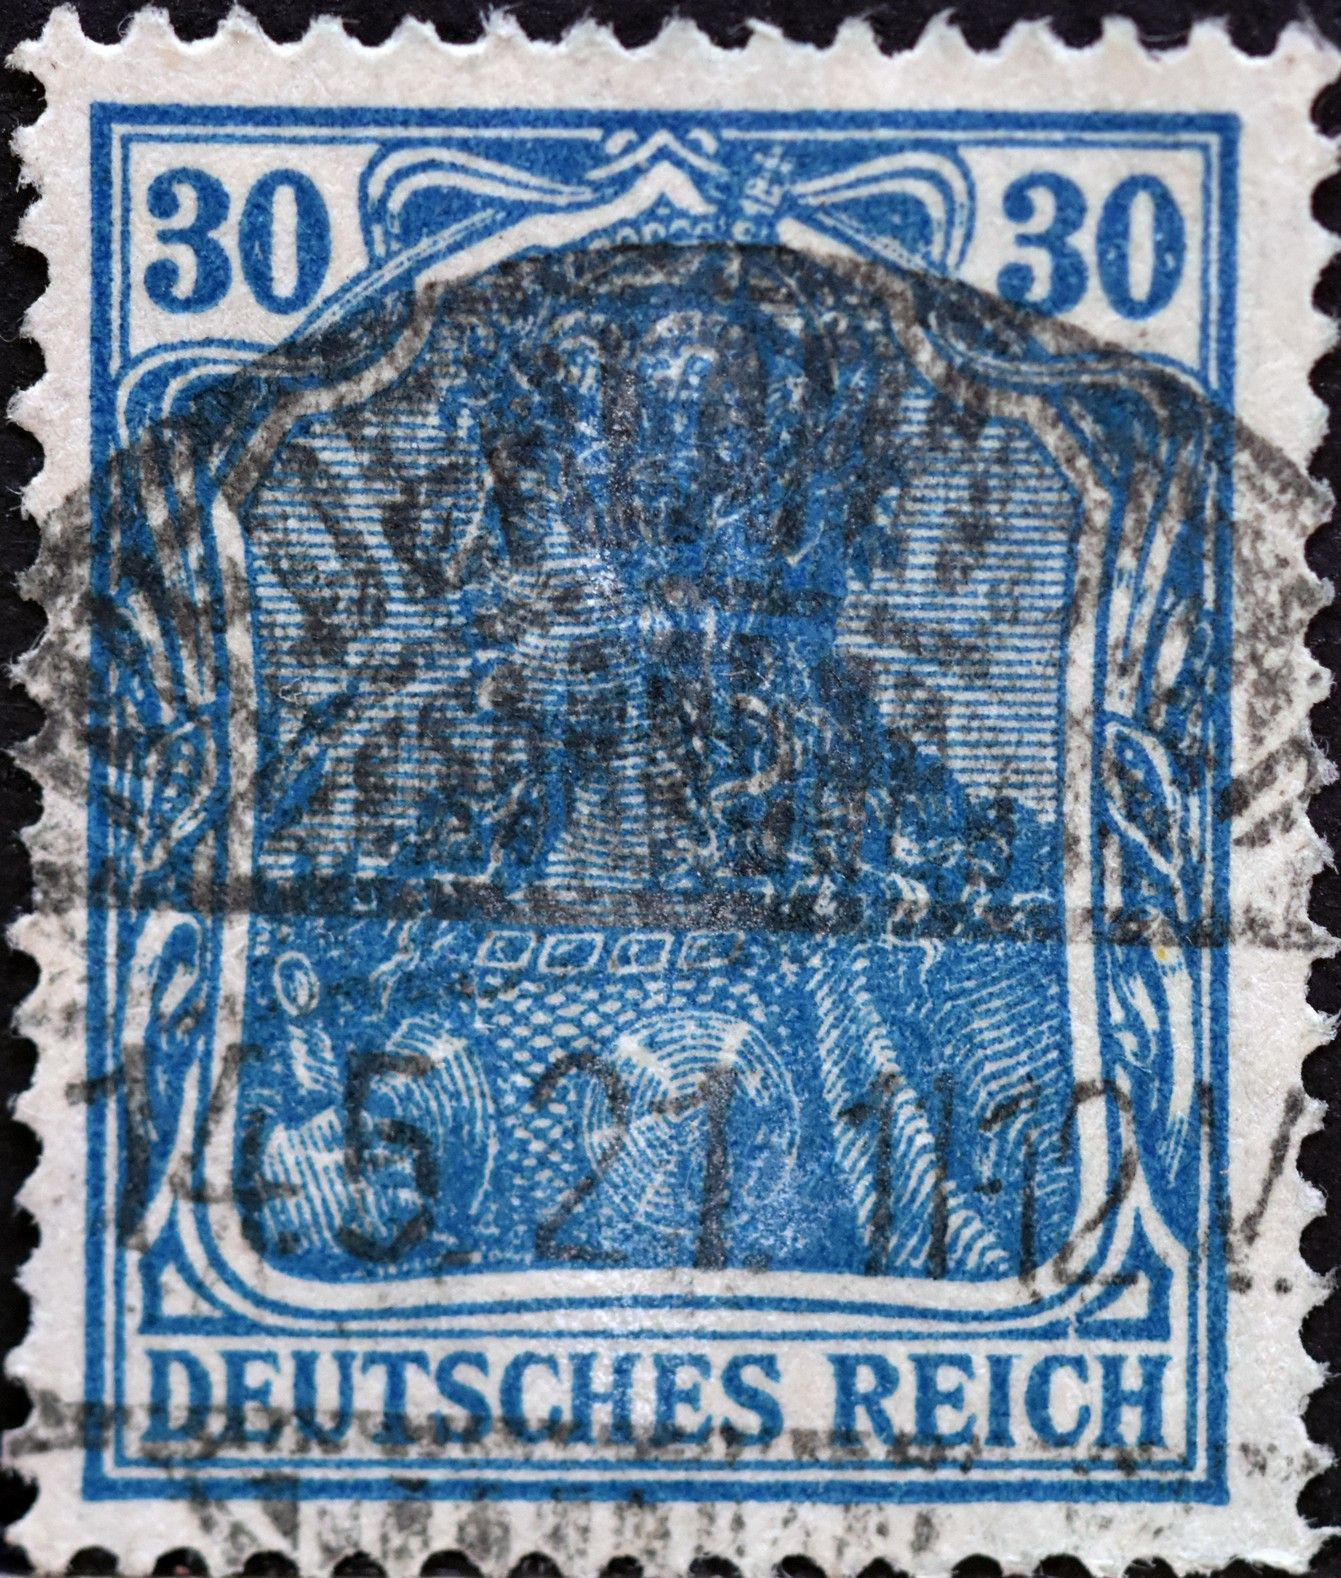 Germany 23 Germania Amp Local Motifs With Images